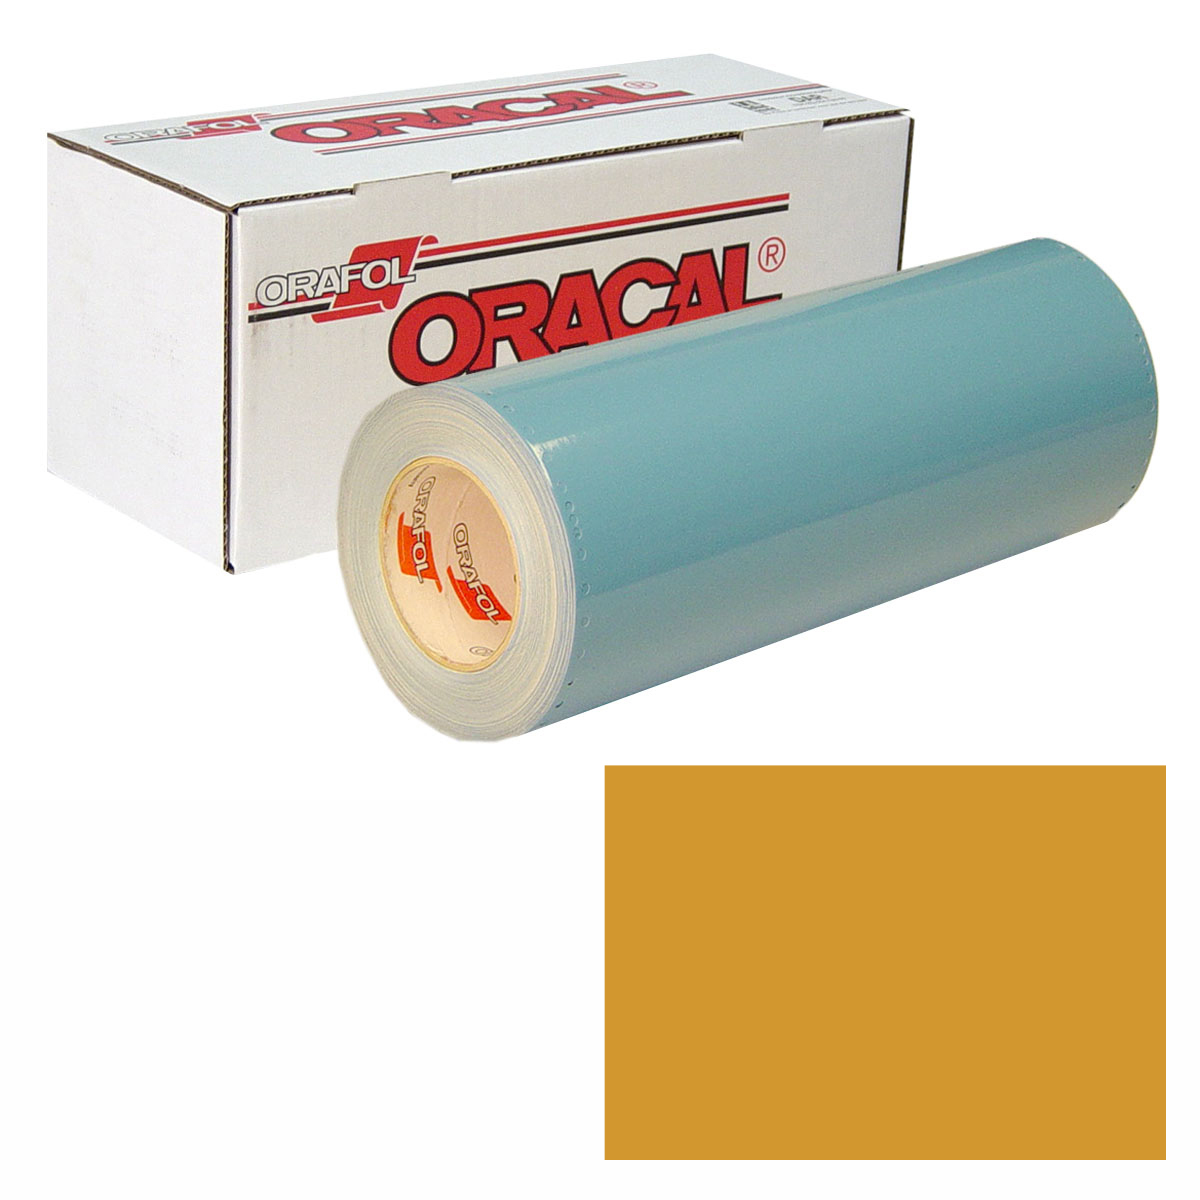 ORACAL 751 15in X 50yd 824 Imitation Gold